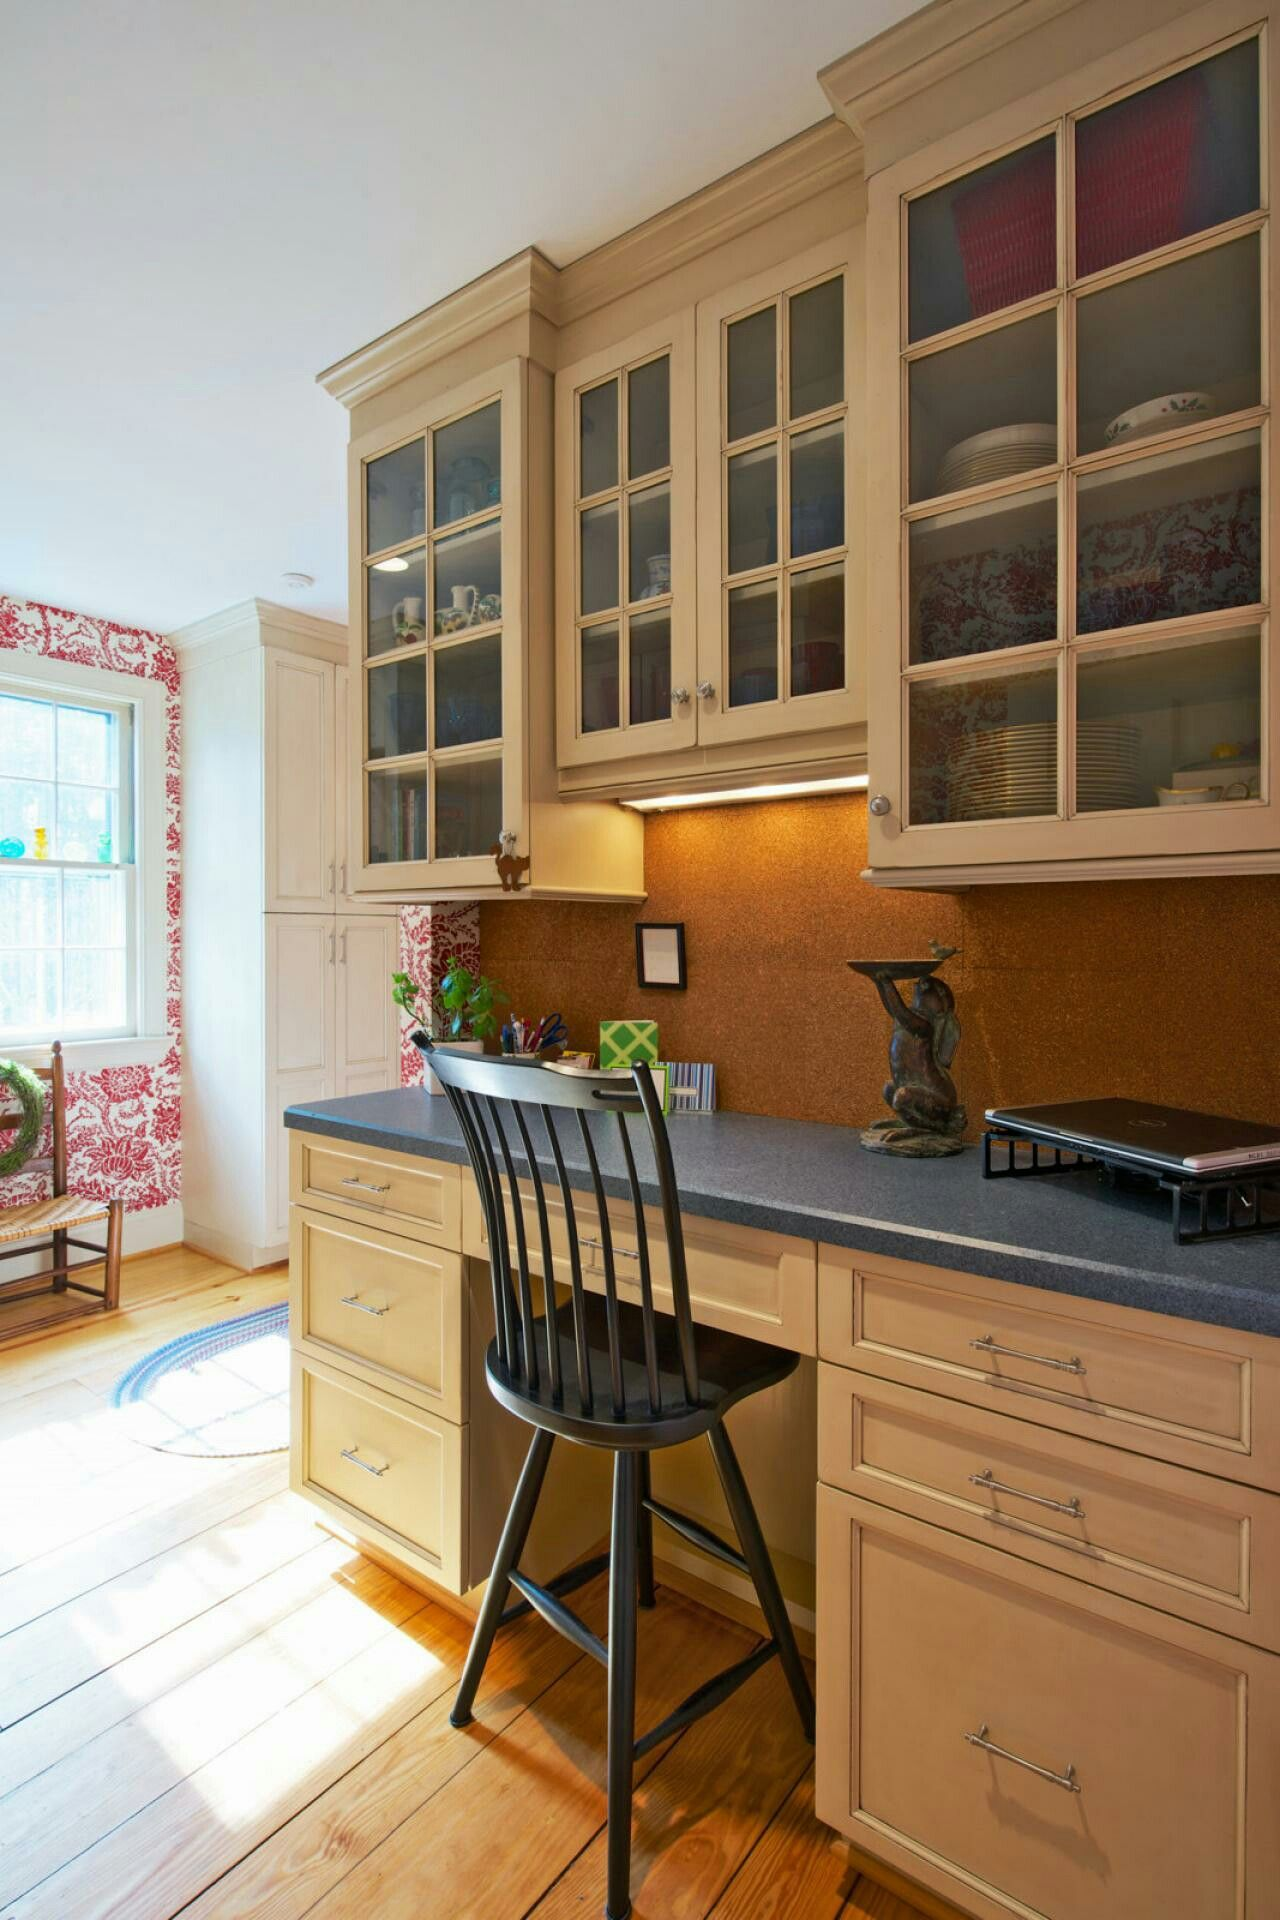 Pin by Sue Davis on house dreams Kitchen office spaces